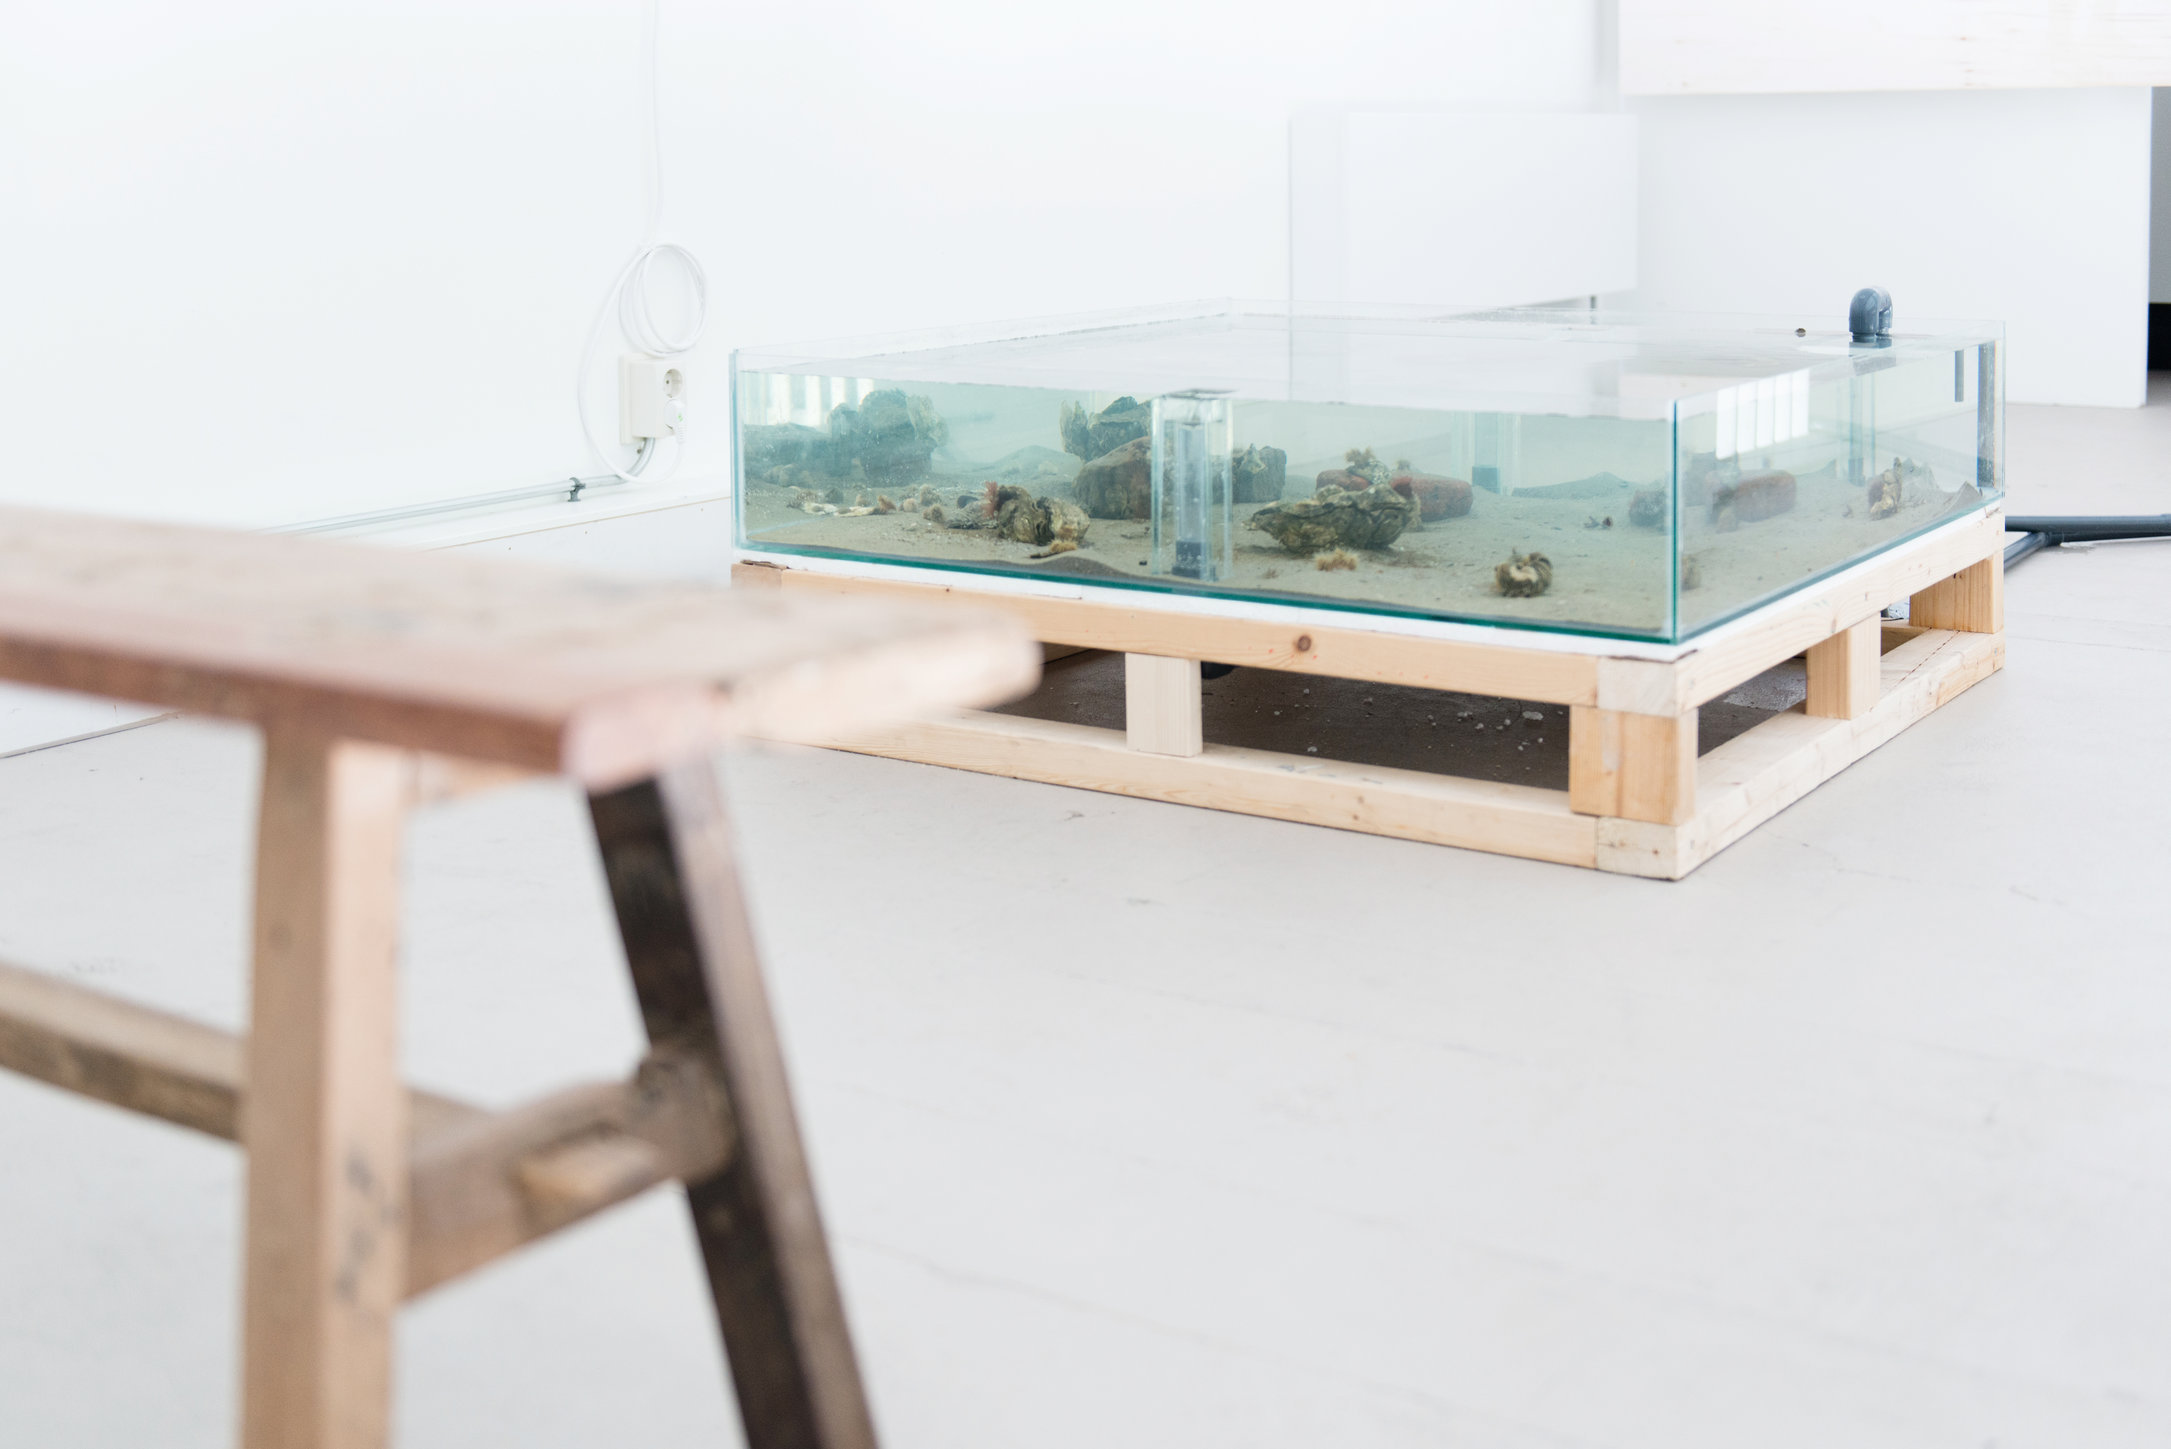 Eamonn Harnett, installation view A Tale of a Tub. Photo: Fabian Landewee